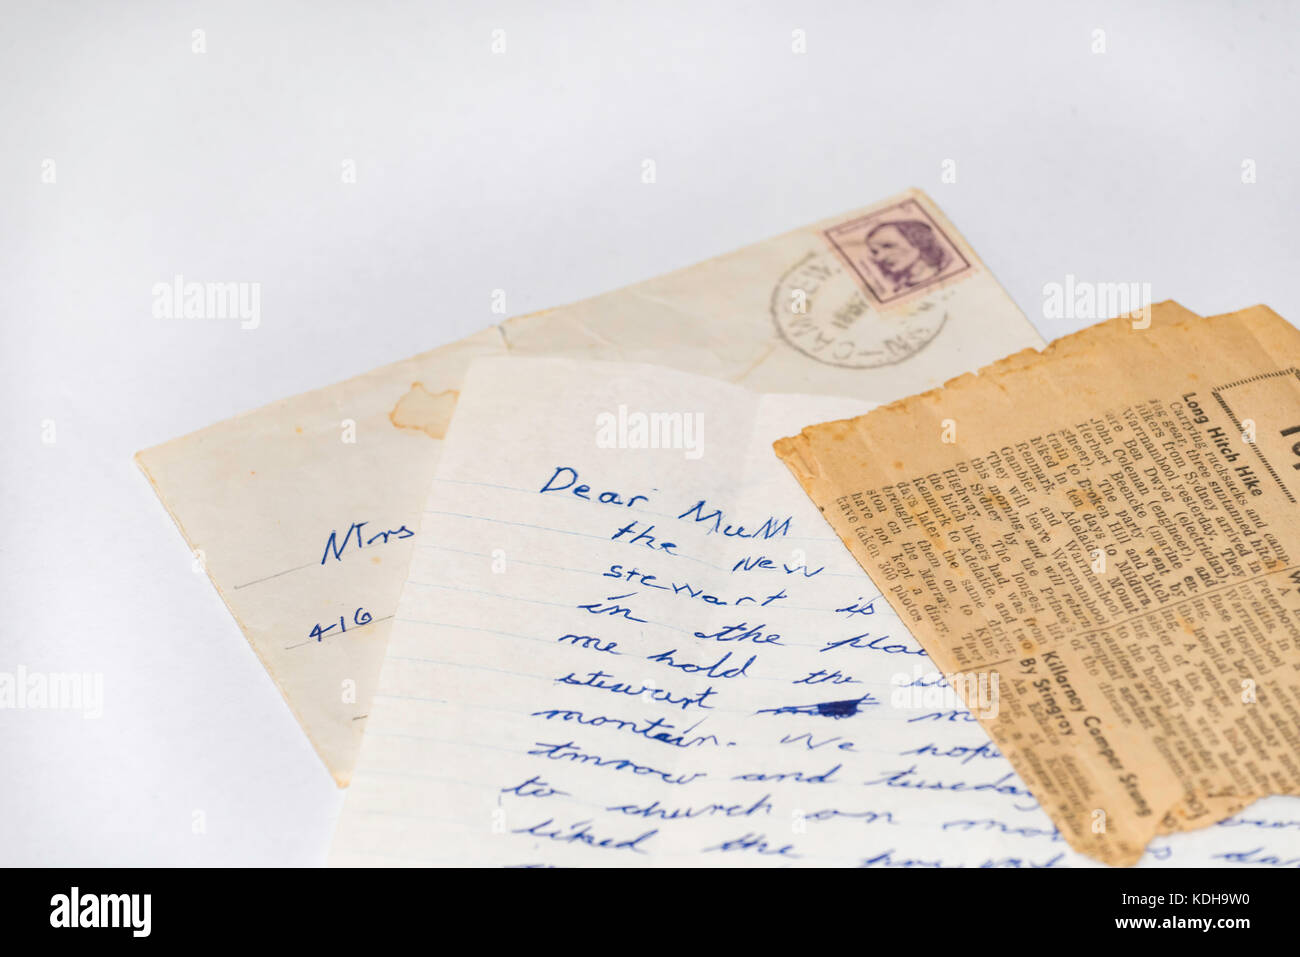 An old hand written letter, envelope and newspaper article to a Mum - Stock Image